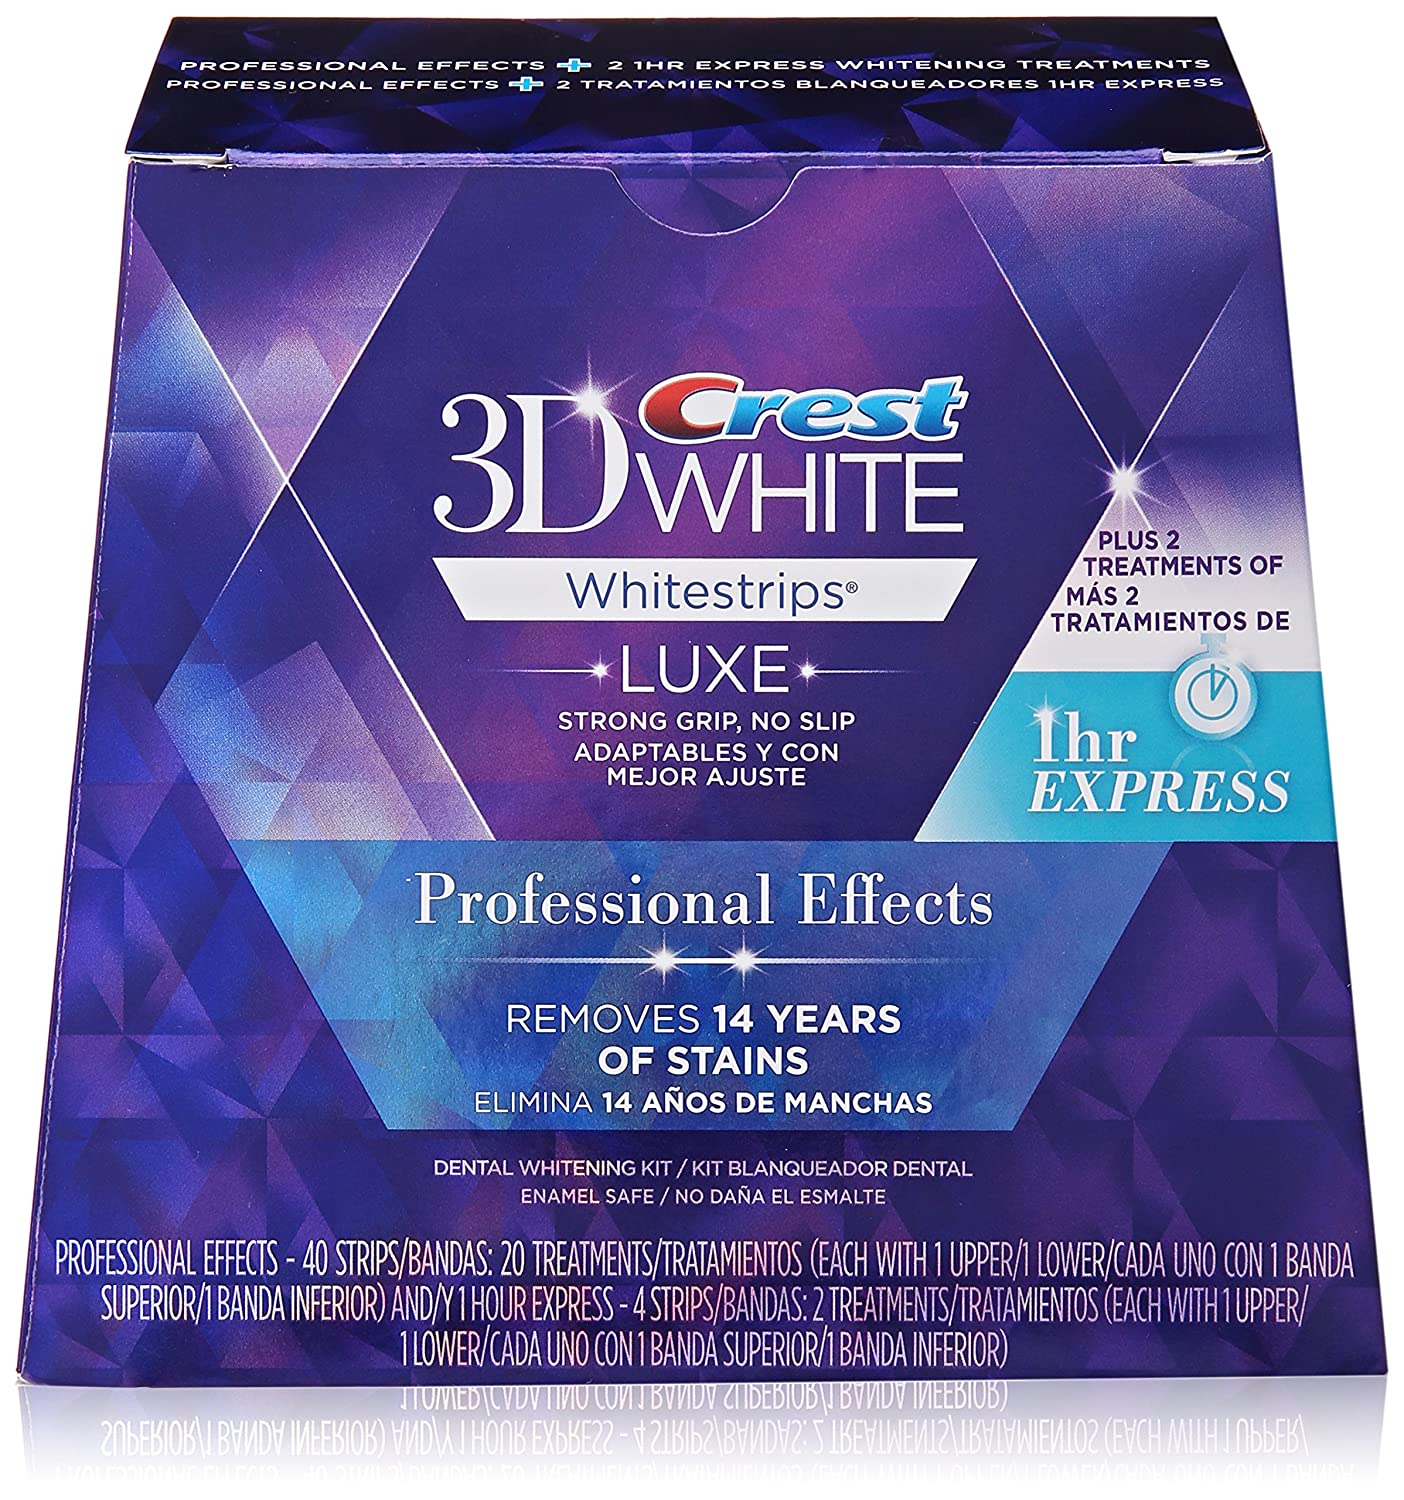 33 likes crest 3d white luxe whitestrips professional effects teeth whiteningfind and save ideas about crest 3d white on pinterest 3d crest whitestrips